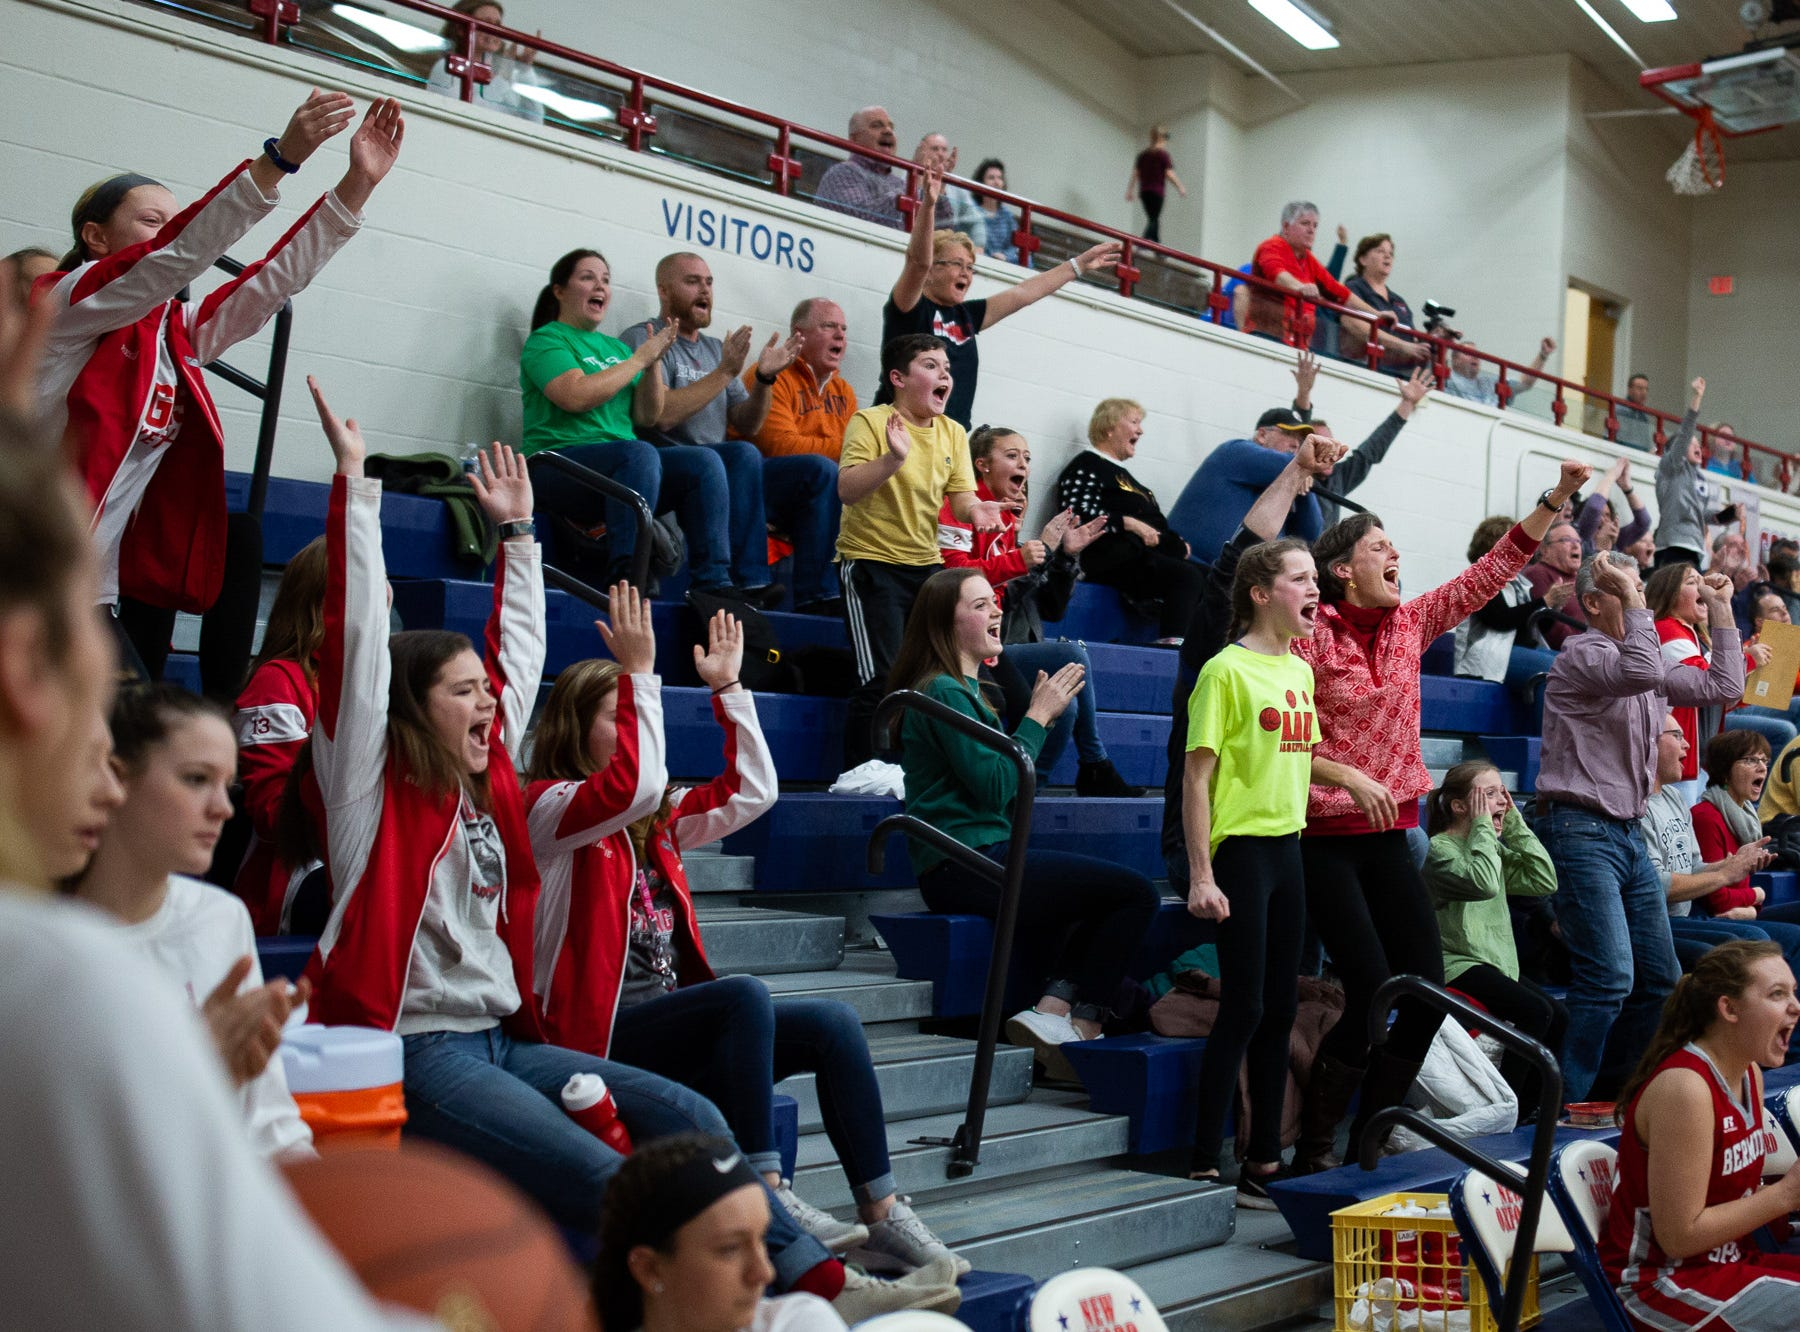 Bermudian Springs fans cheer in the final seconds of the consolation game between Bermudian Springs and York Suburban during the New Oxford Girls Basketball Tip-Off Tournament, Saturday, Dec. 8, 2018, in New Oxford. The Bermudian Springs Lady Eagles defeated the York Suburban Lady Trojans 60-58.